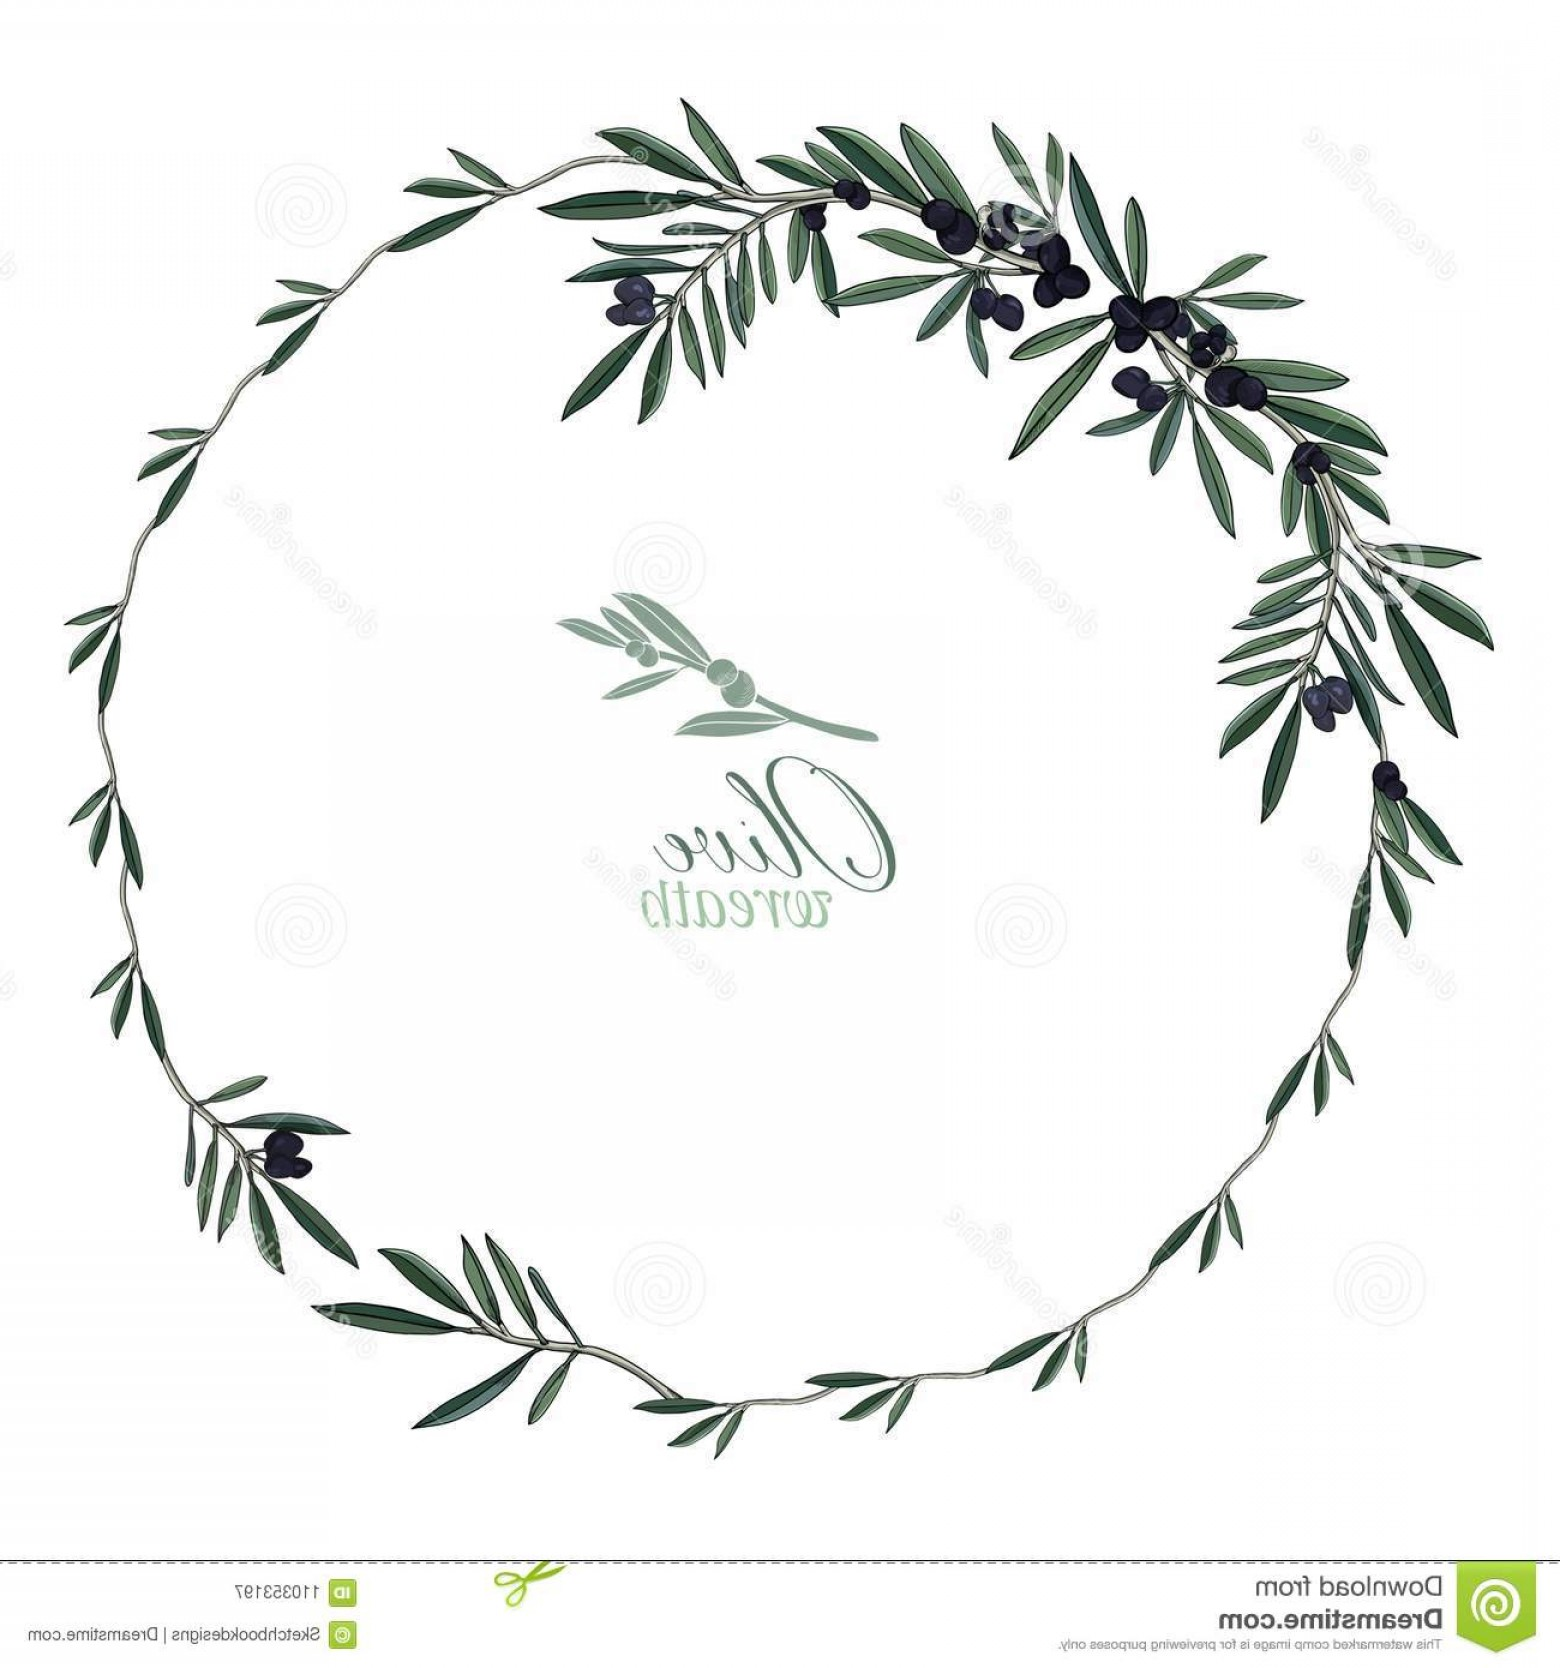 Olive Vector: Wreath Realistic Olives Perfect Weddings Food Design Modern Sketched Olive Vector Set Image